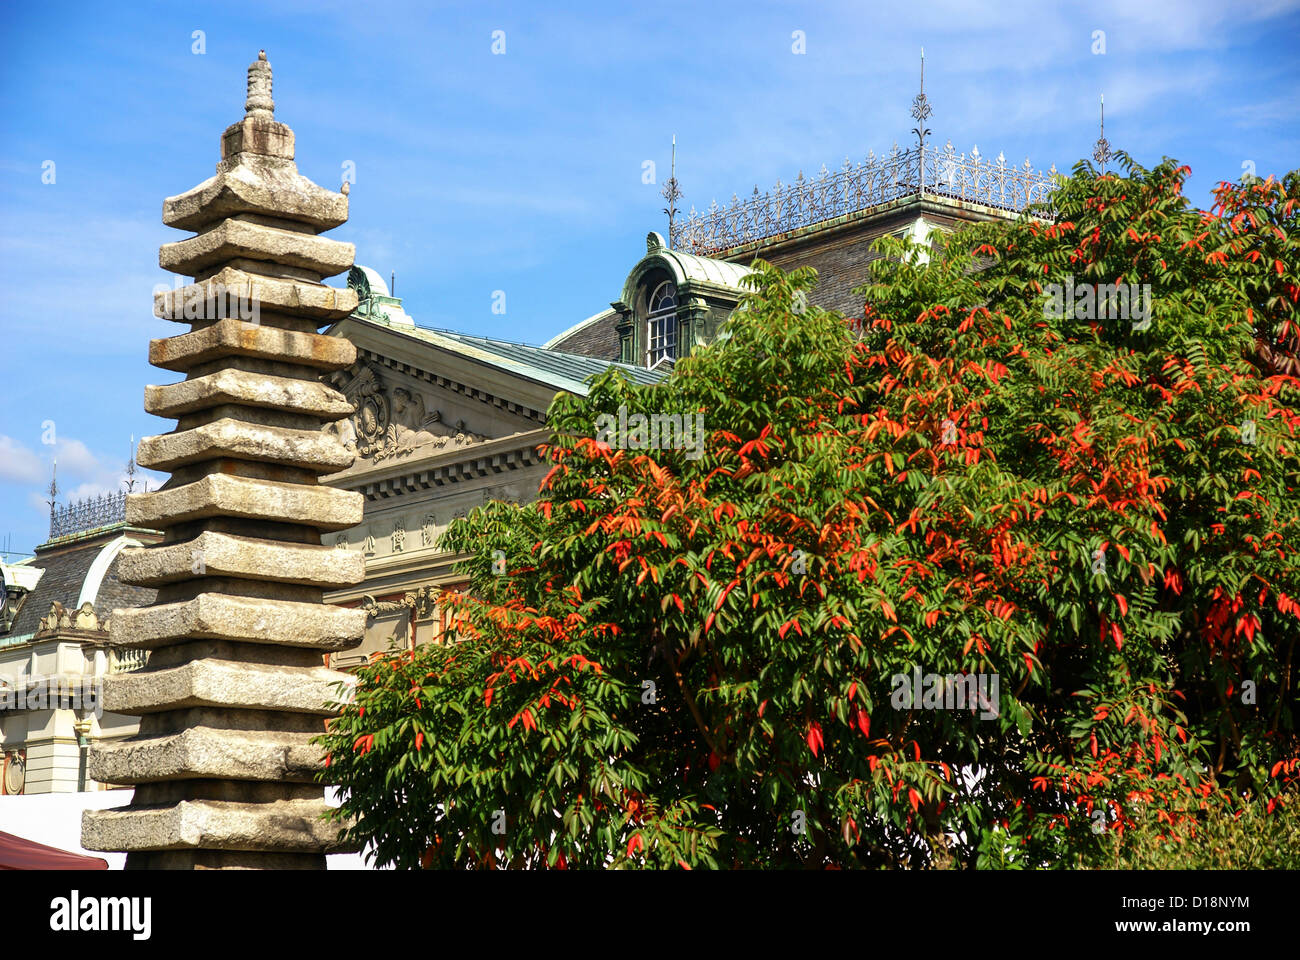 Japan, Kyoto Higashiyama, Kyoto National museum - Stock Image